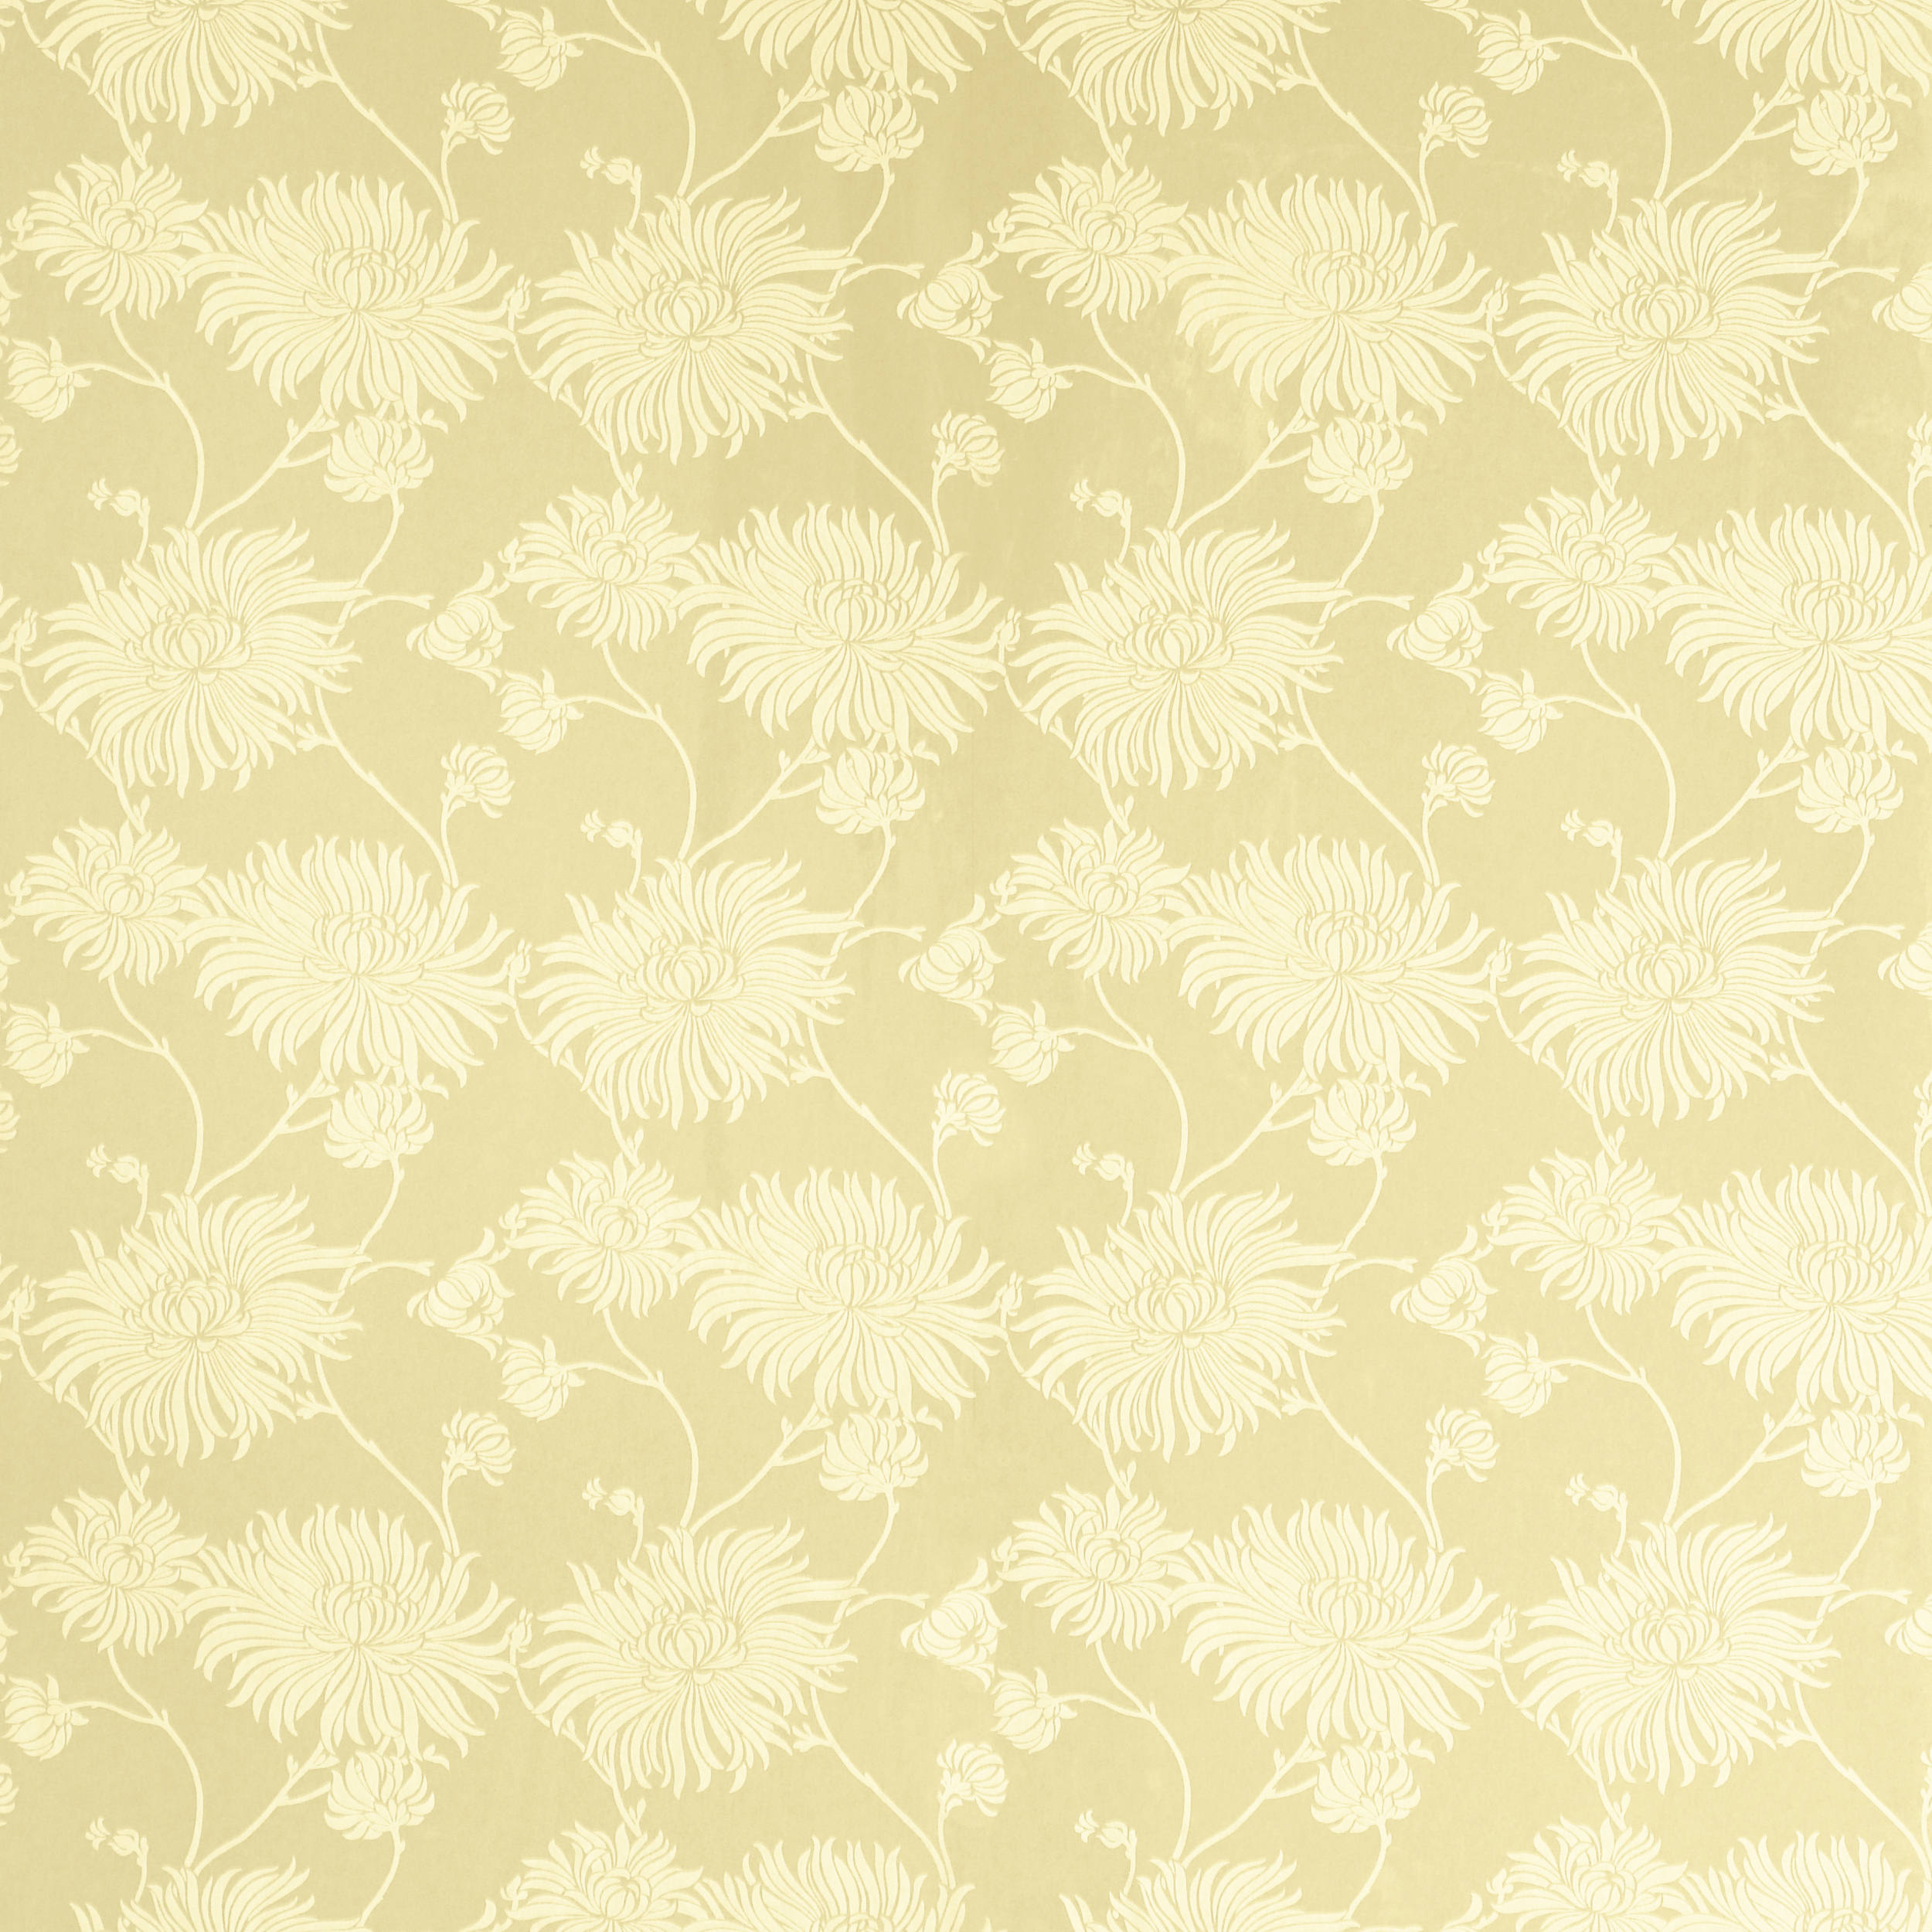 Home Decorating Wallpaper Kimono Gold Floral Wallpaper 2500x2500